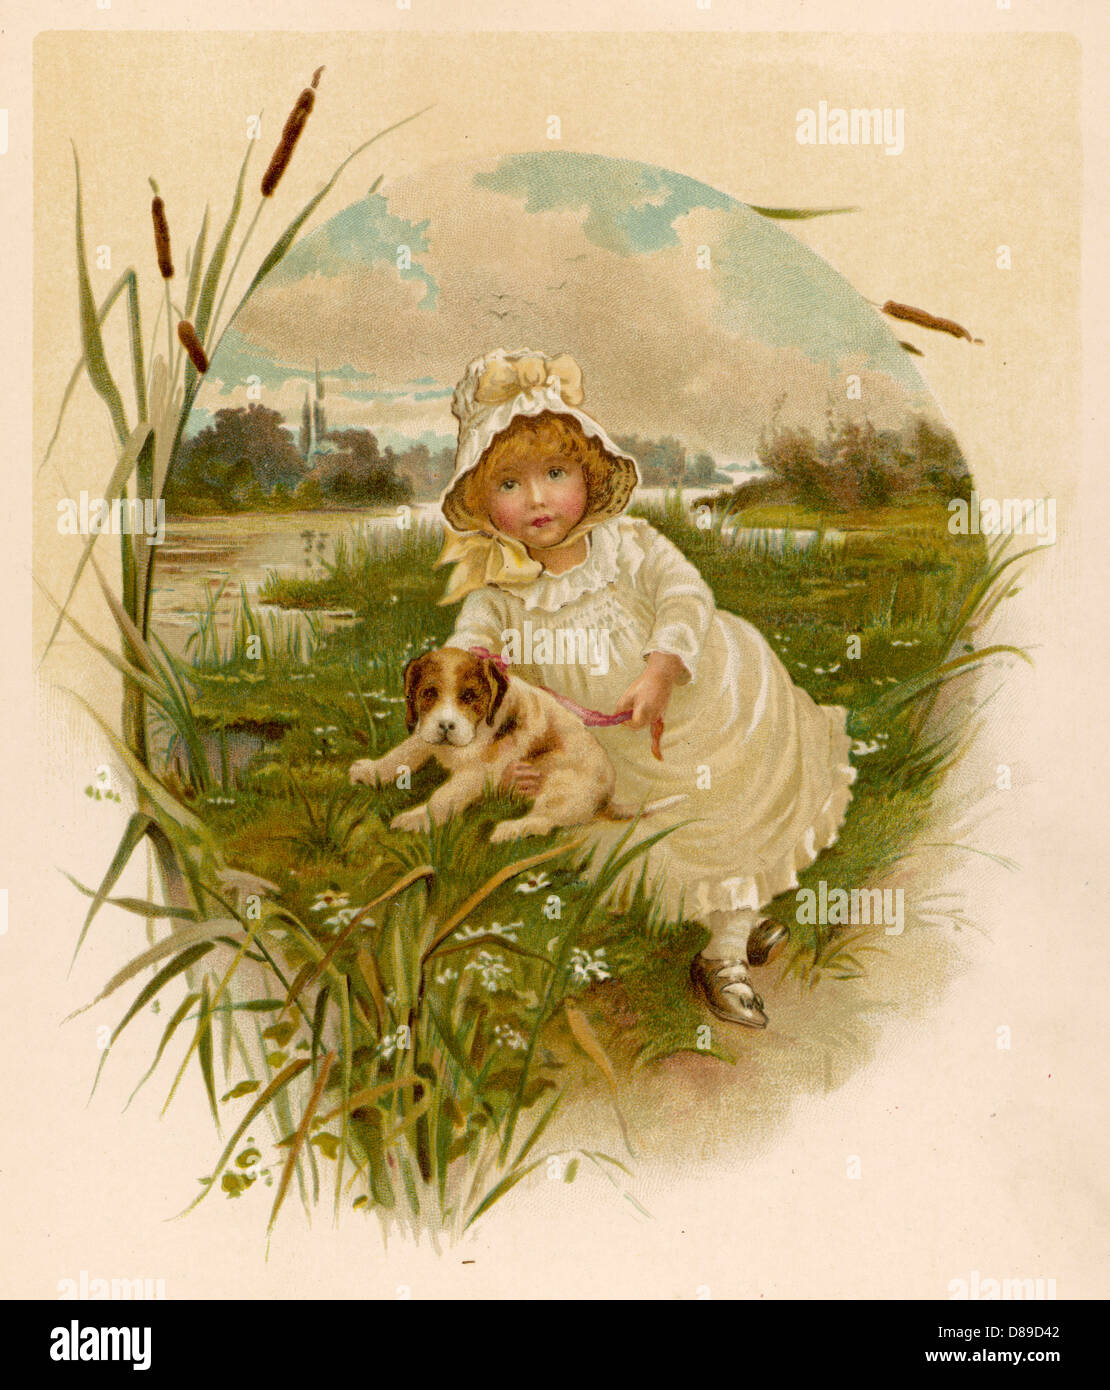 Girl And Puppy 1889 - Stock Image